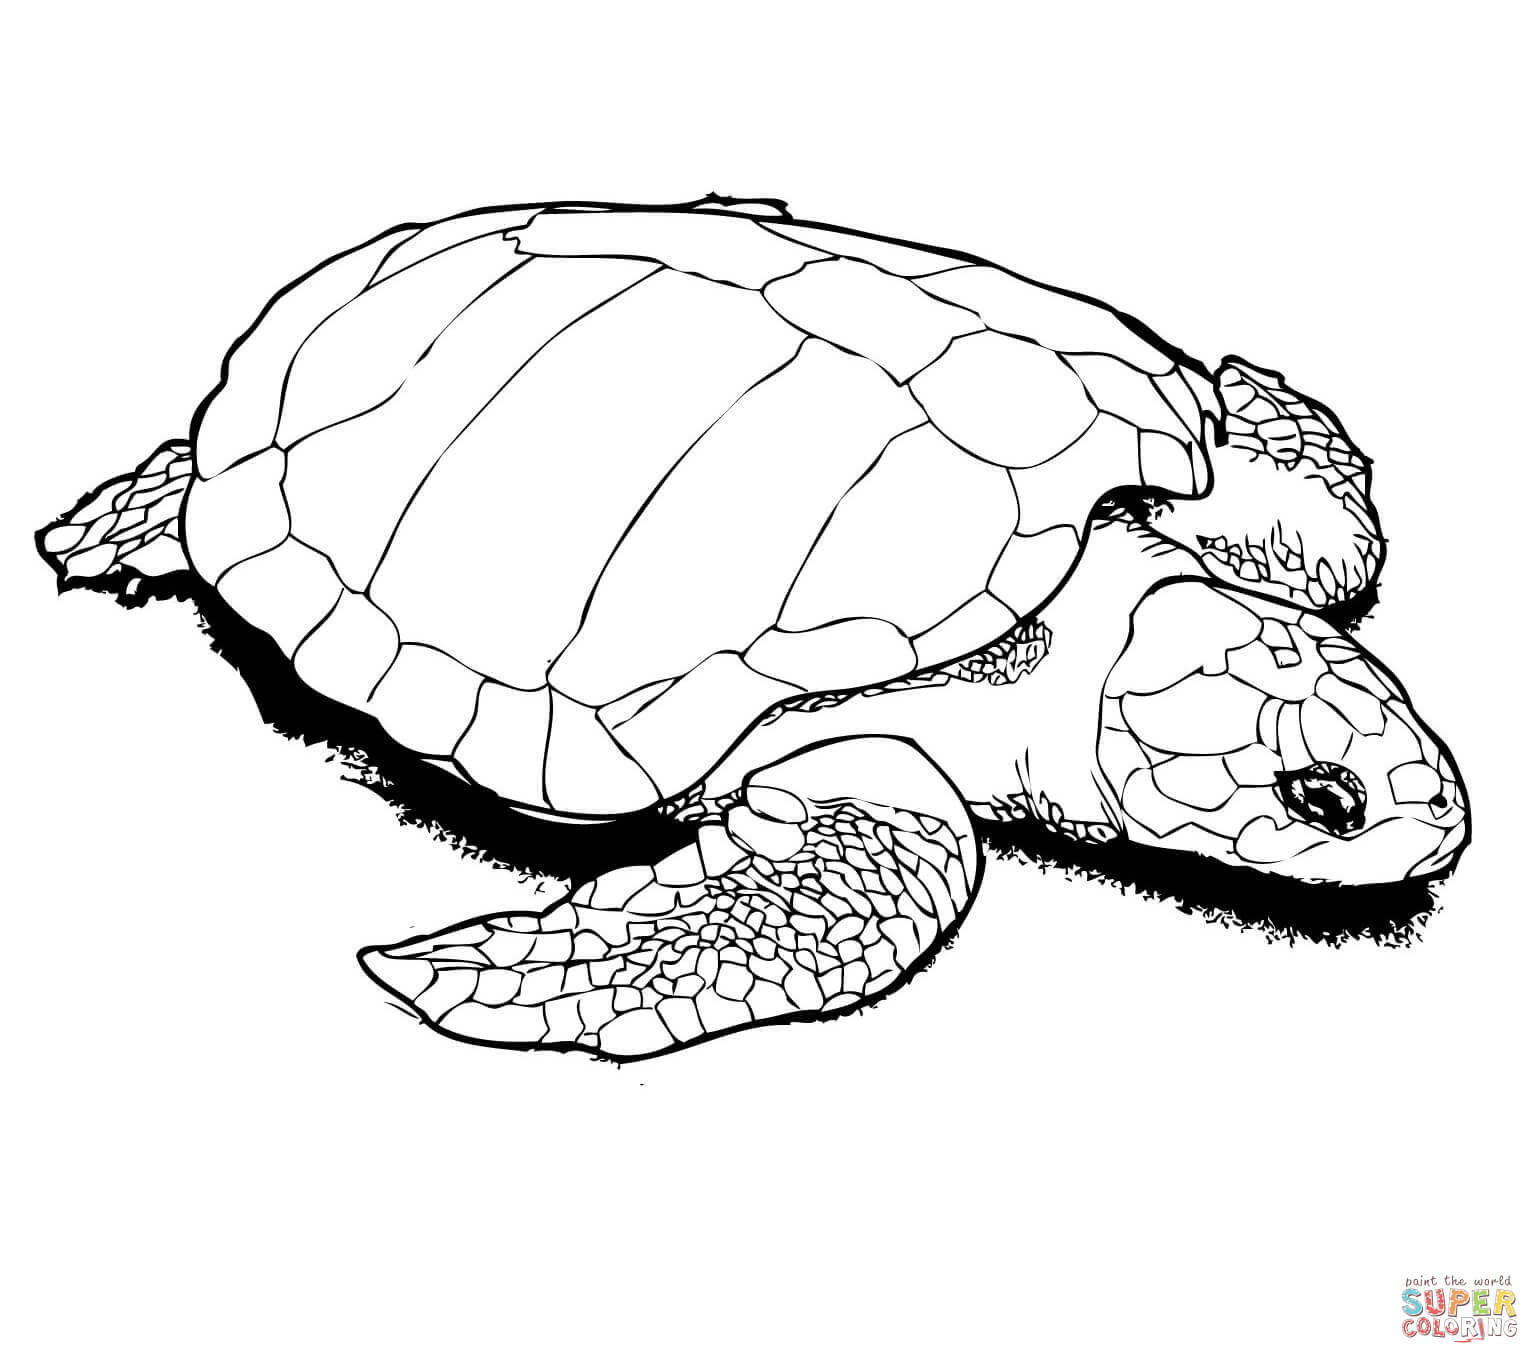 Snapping Turtle Coloring Pages At Getcolorings